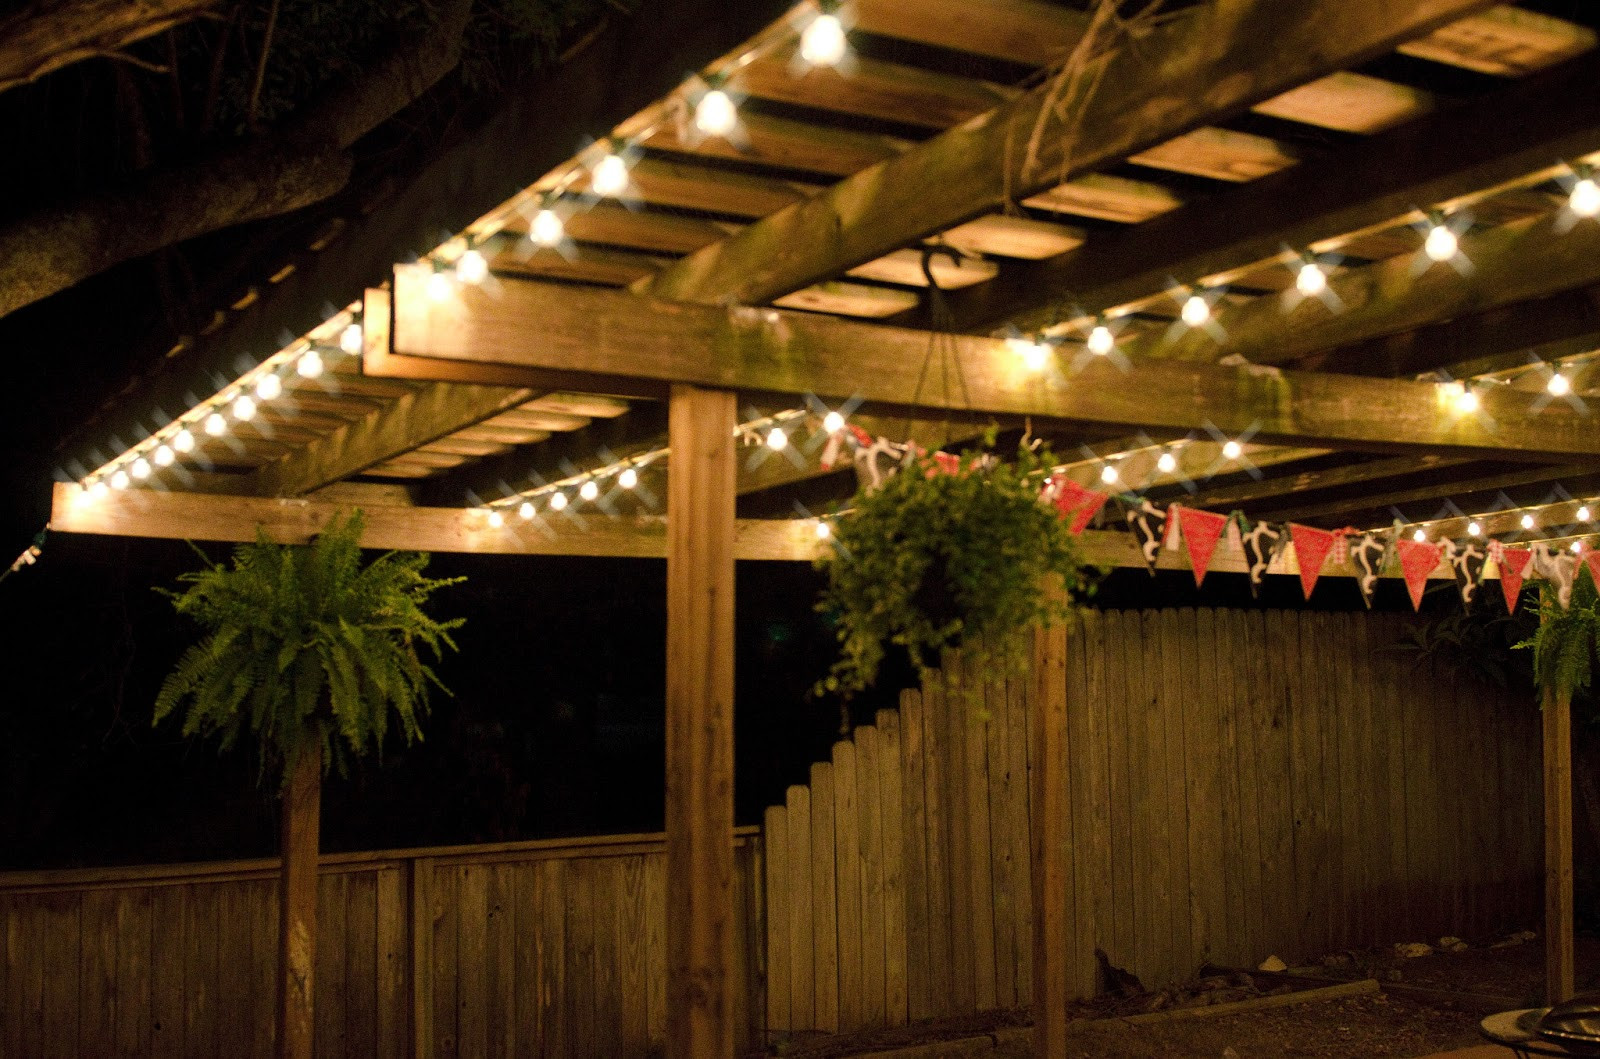 Best ideas about Backyard String Lights . Save or Pin Decorative string lights outdoor 25 tips by Making Your Now.